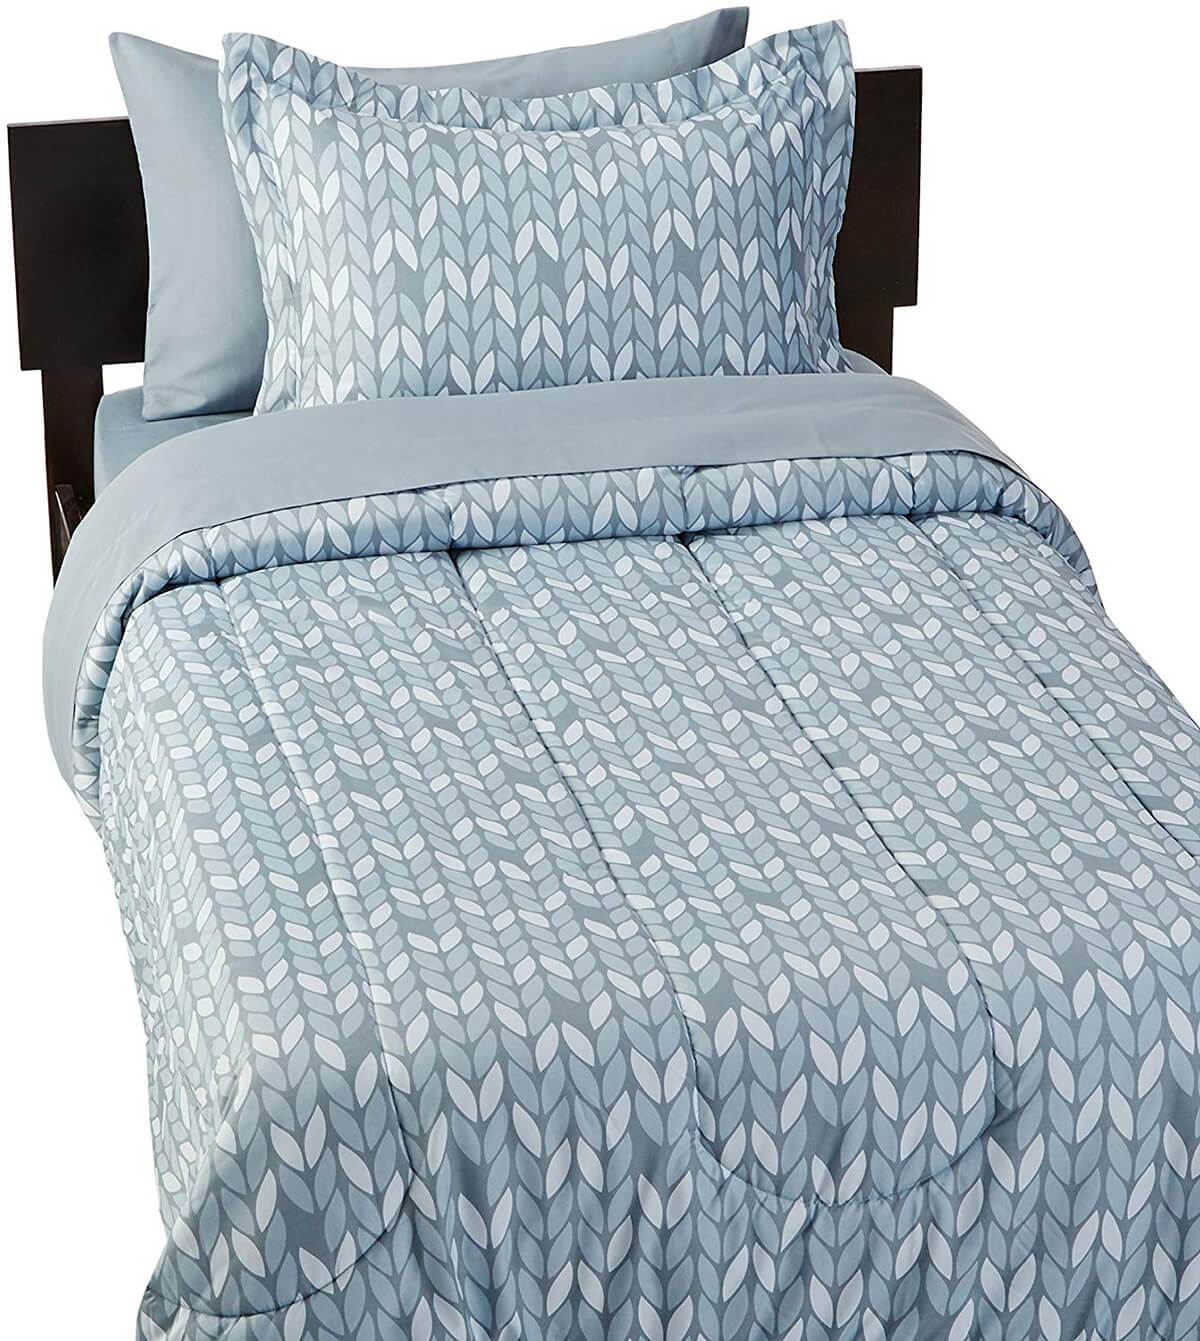 AmazonBasics 5 Piece Dusty Blue Trellis Sheet Set